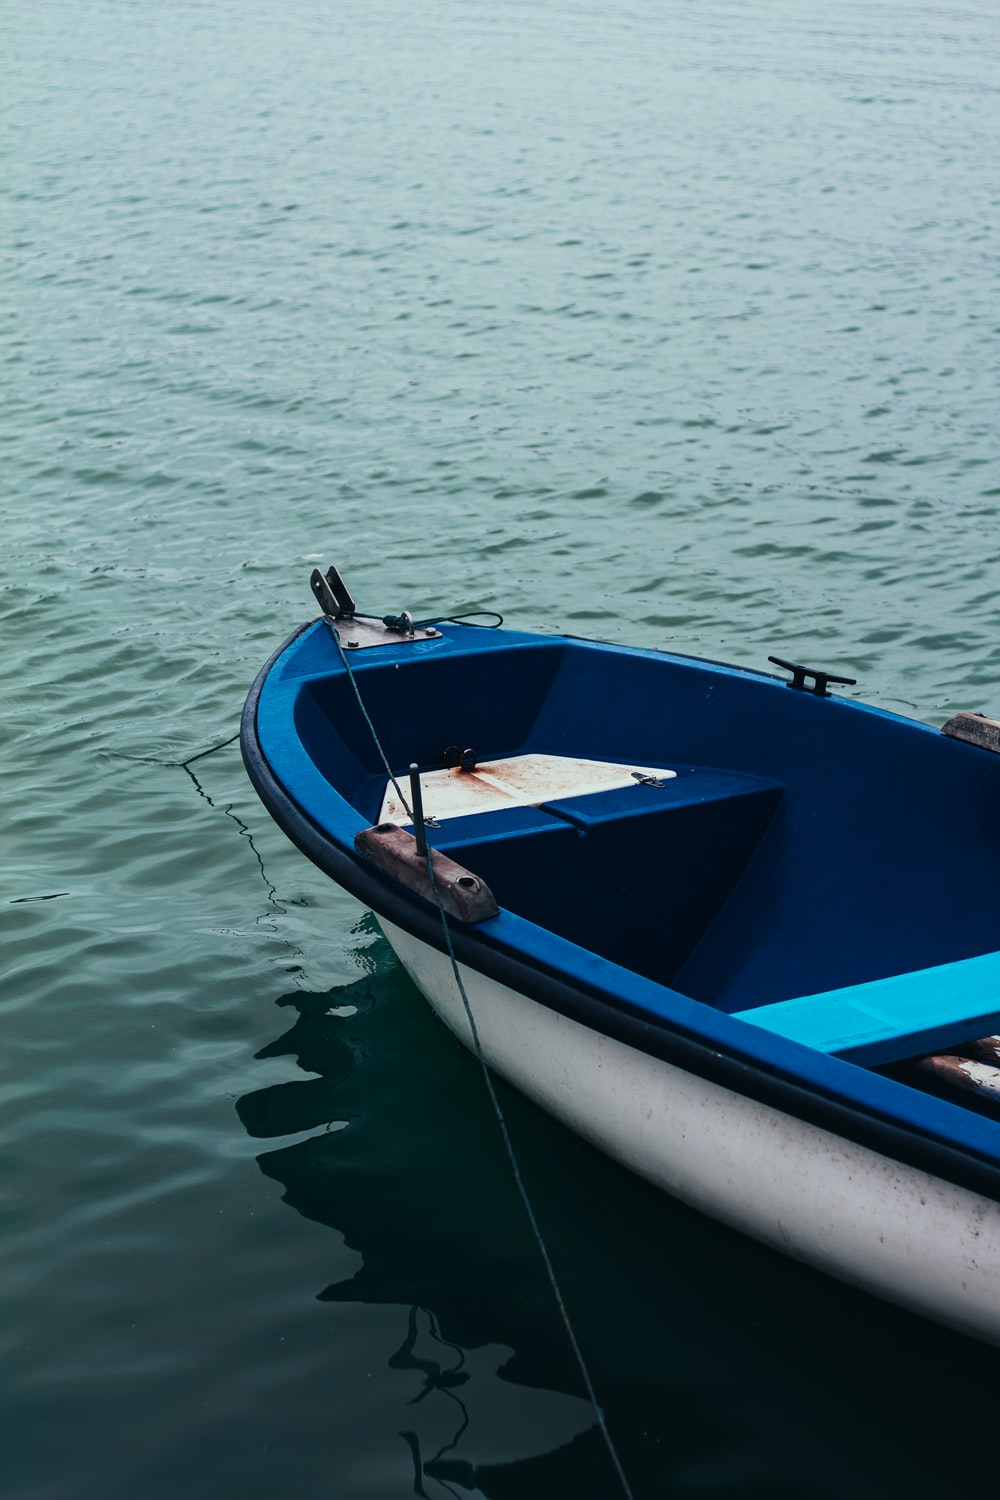 blue and white boat on water during daytime